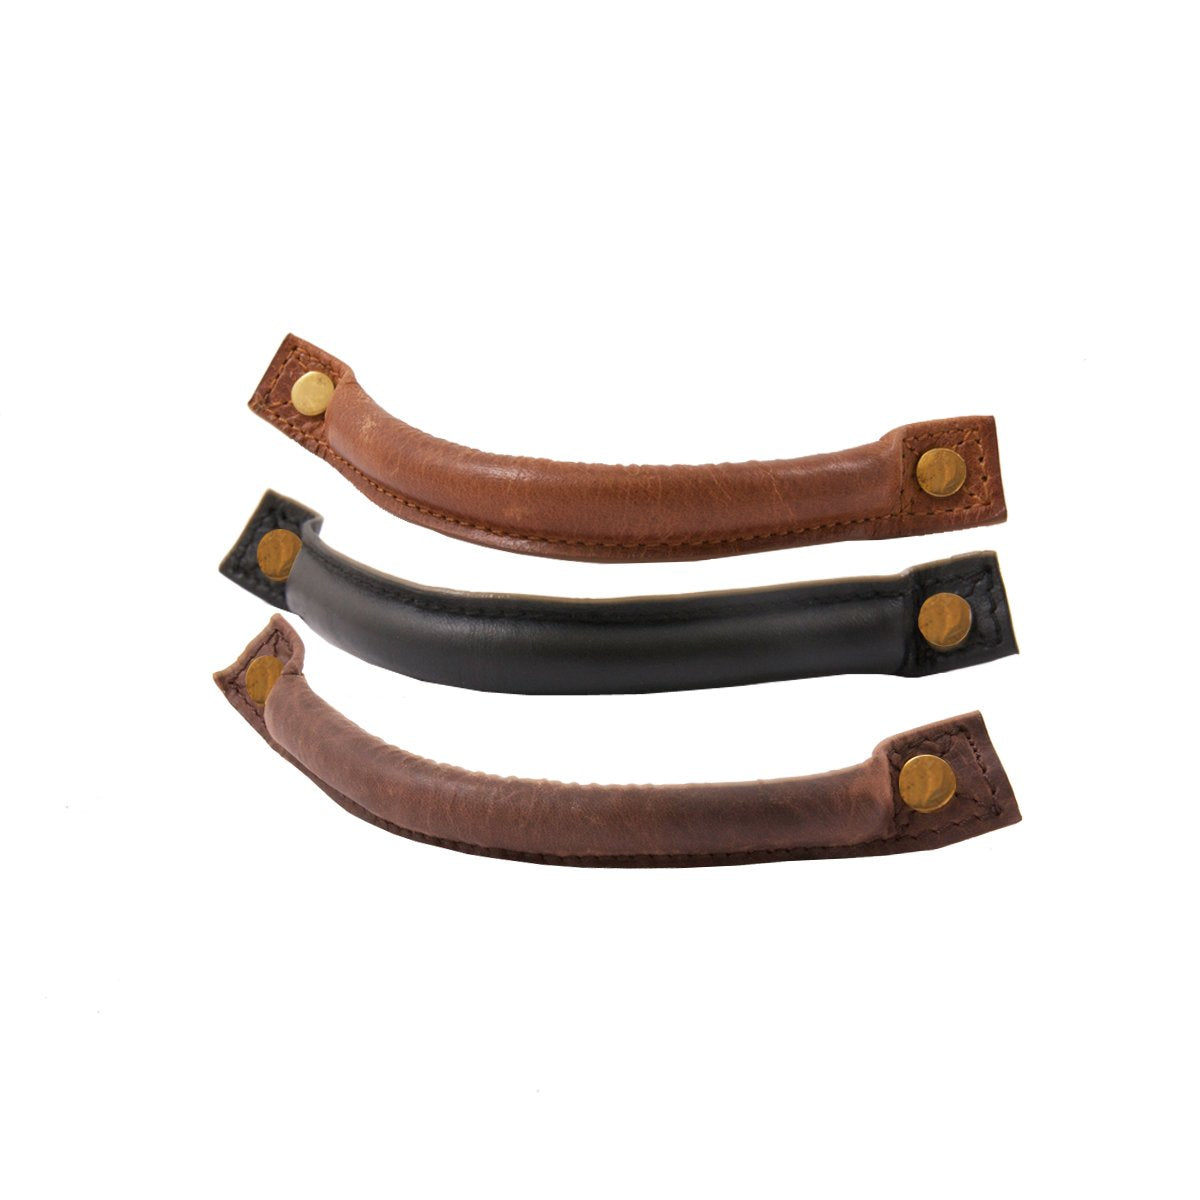 Rounded Leather Handles (Brown/Oak/Black)